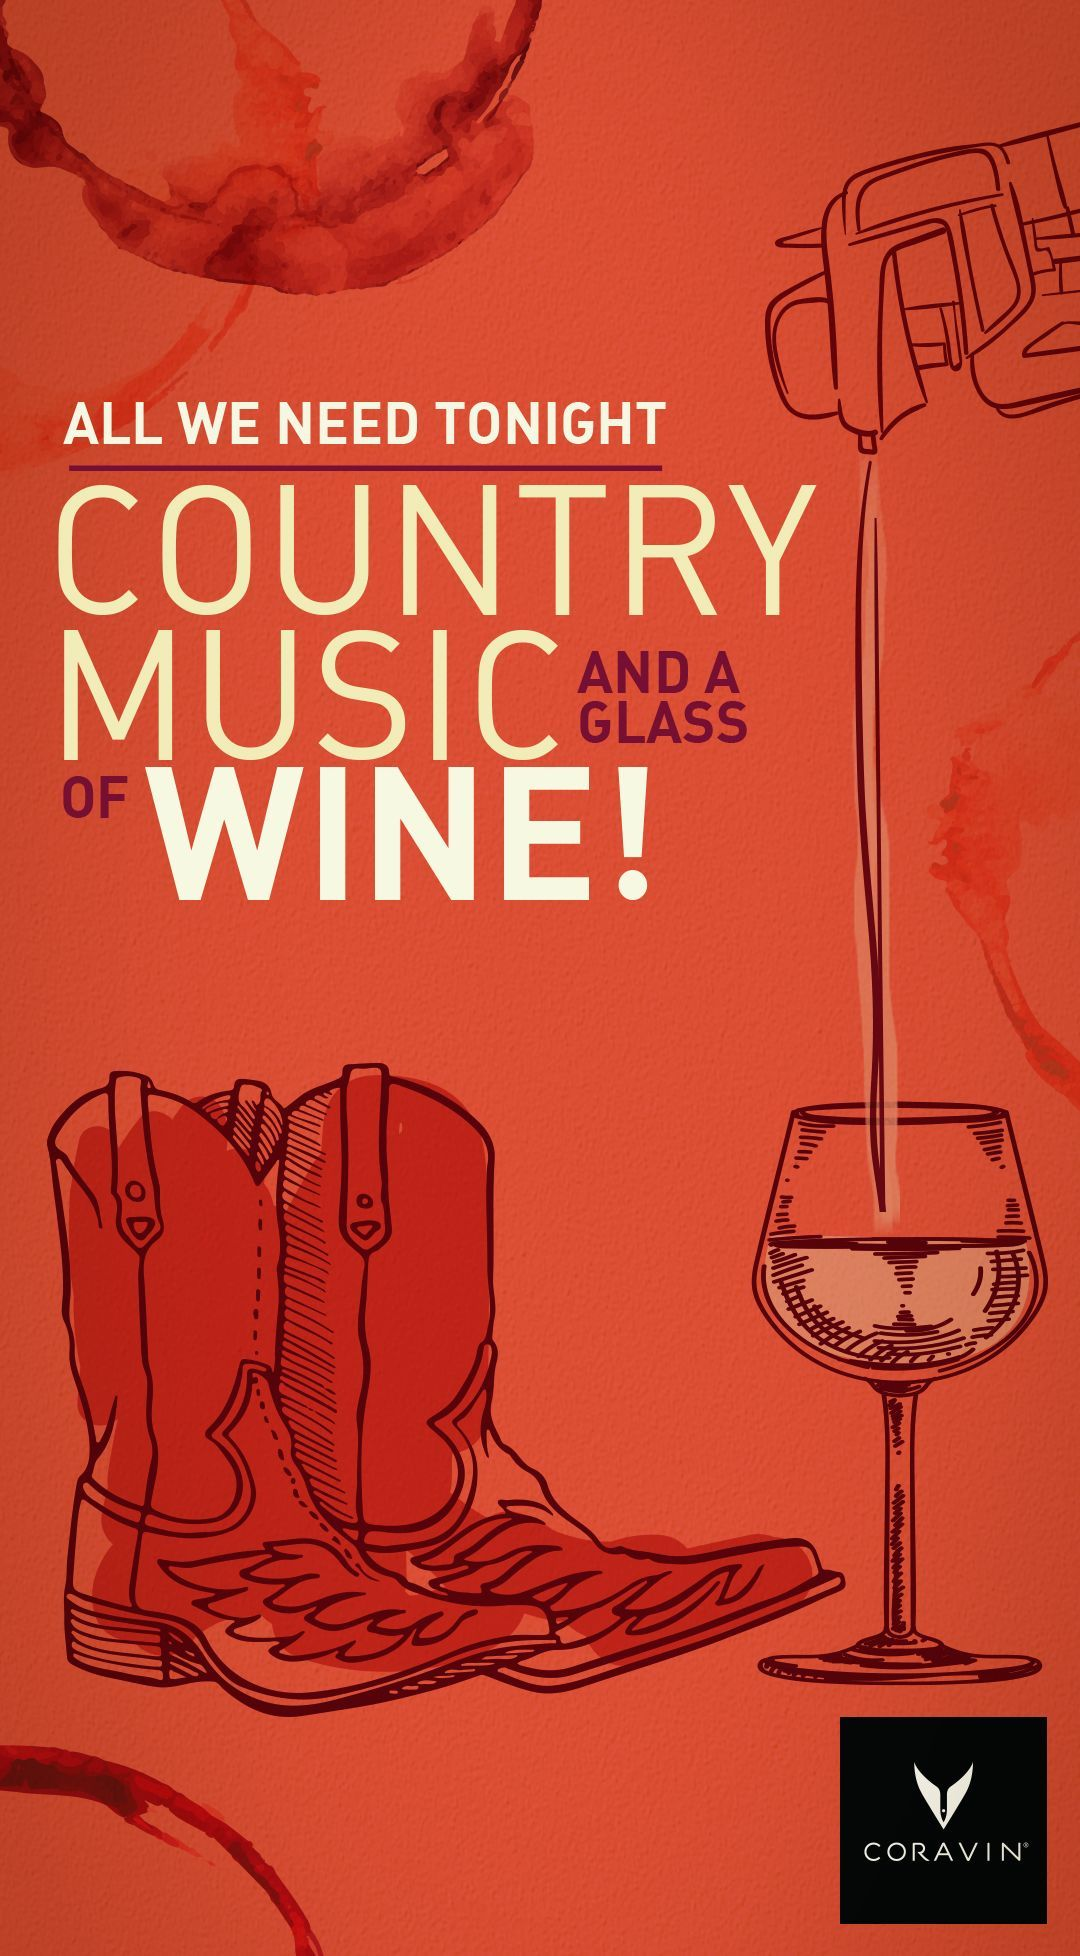 Tonight Is The 2018 Cmt Awards Country Music Isn T All Whiskey And Beer These Days So Grab Your Coravin Pour A Nice Coravin Wine By The Glass Country Music